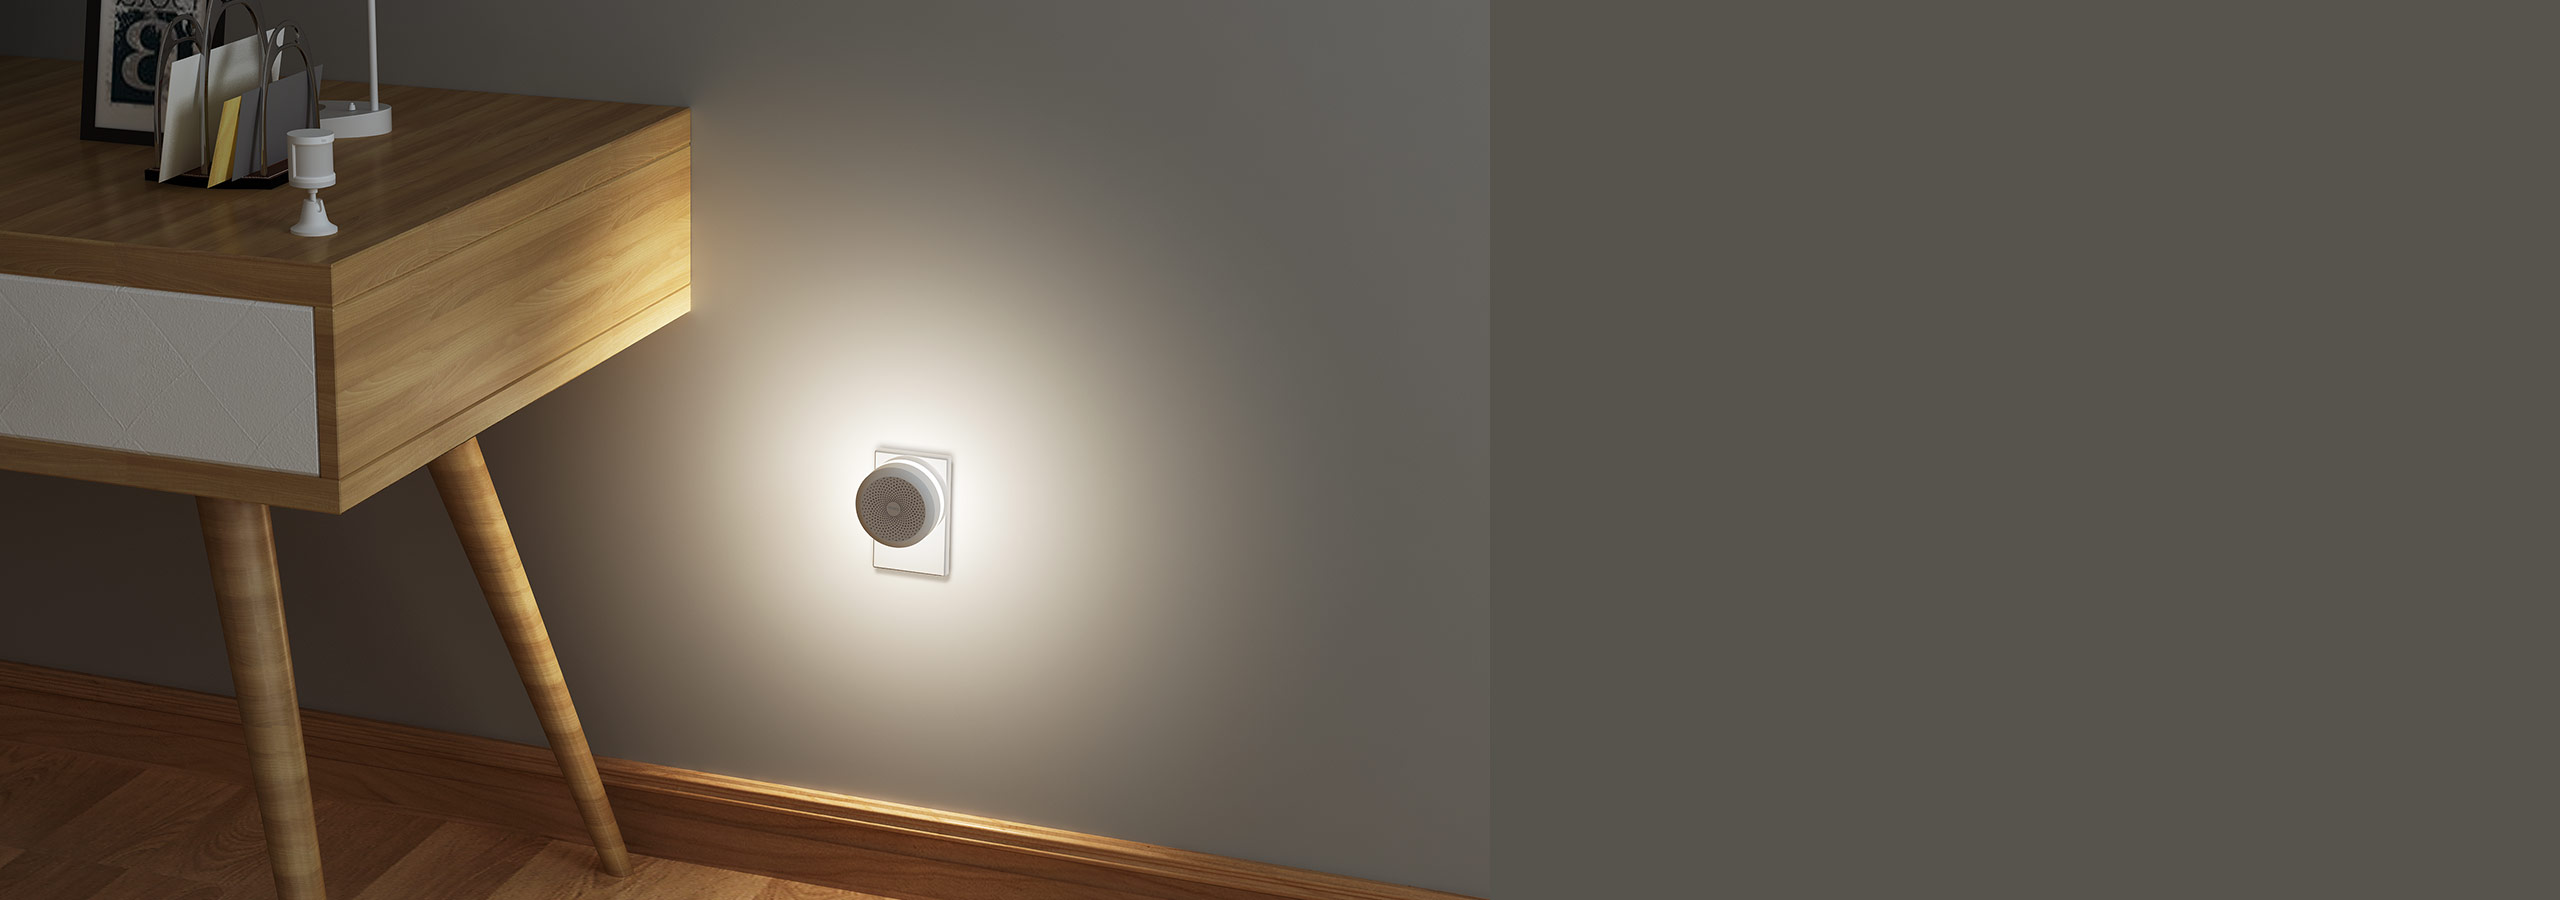 Smart night light with Aqara bridge & Aqara motion sensor